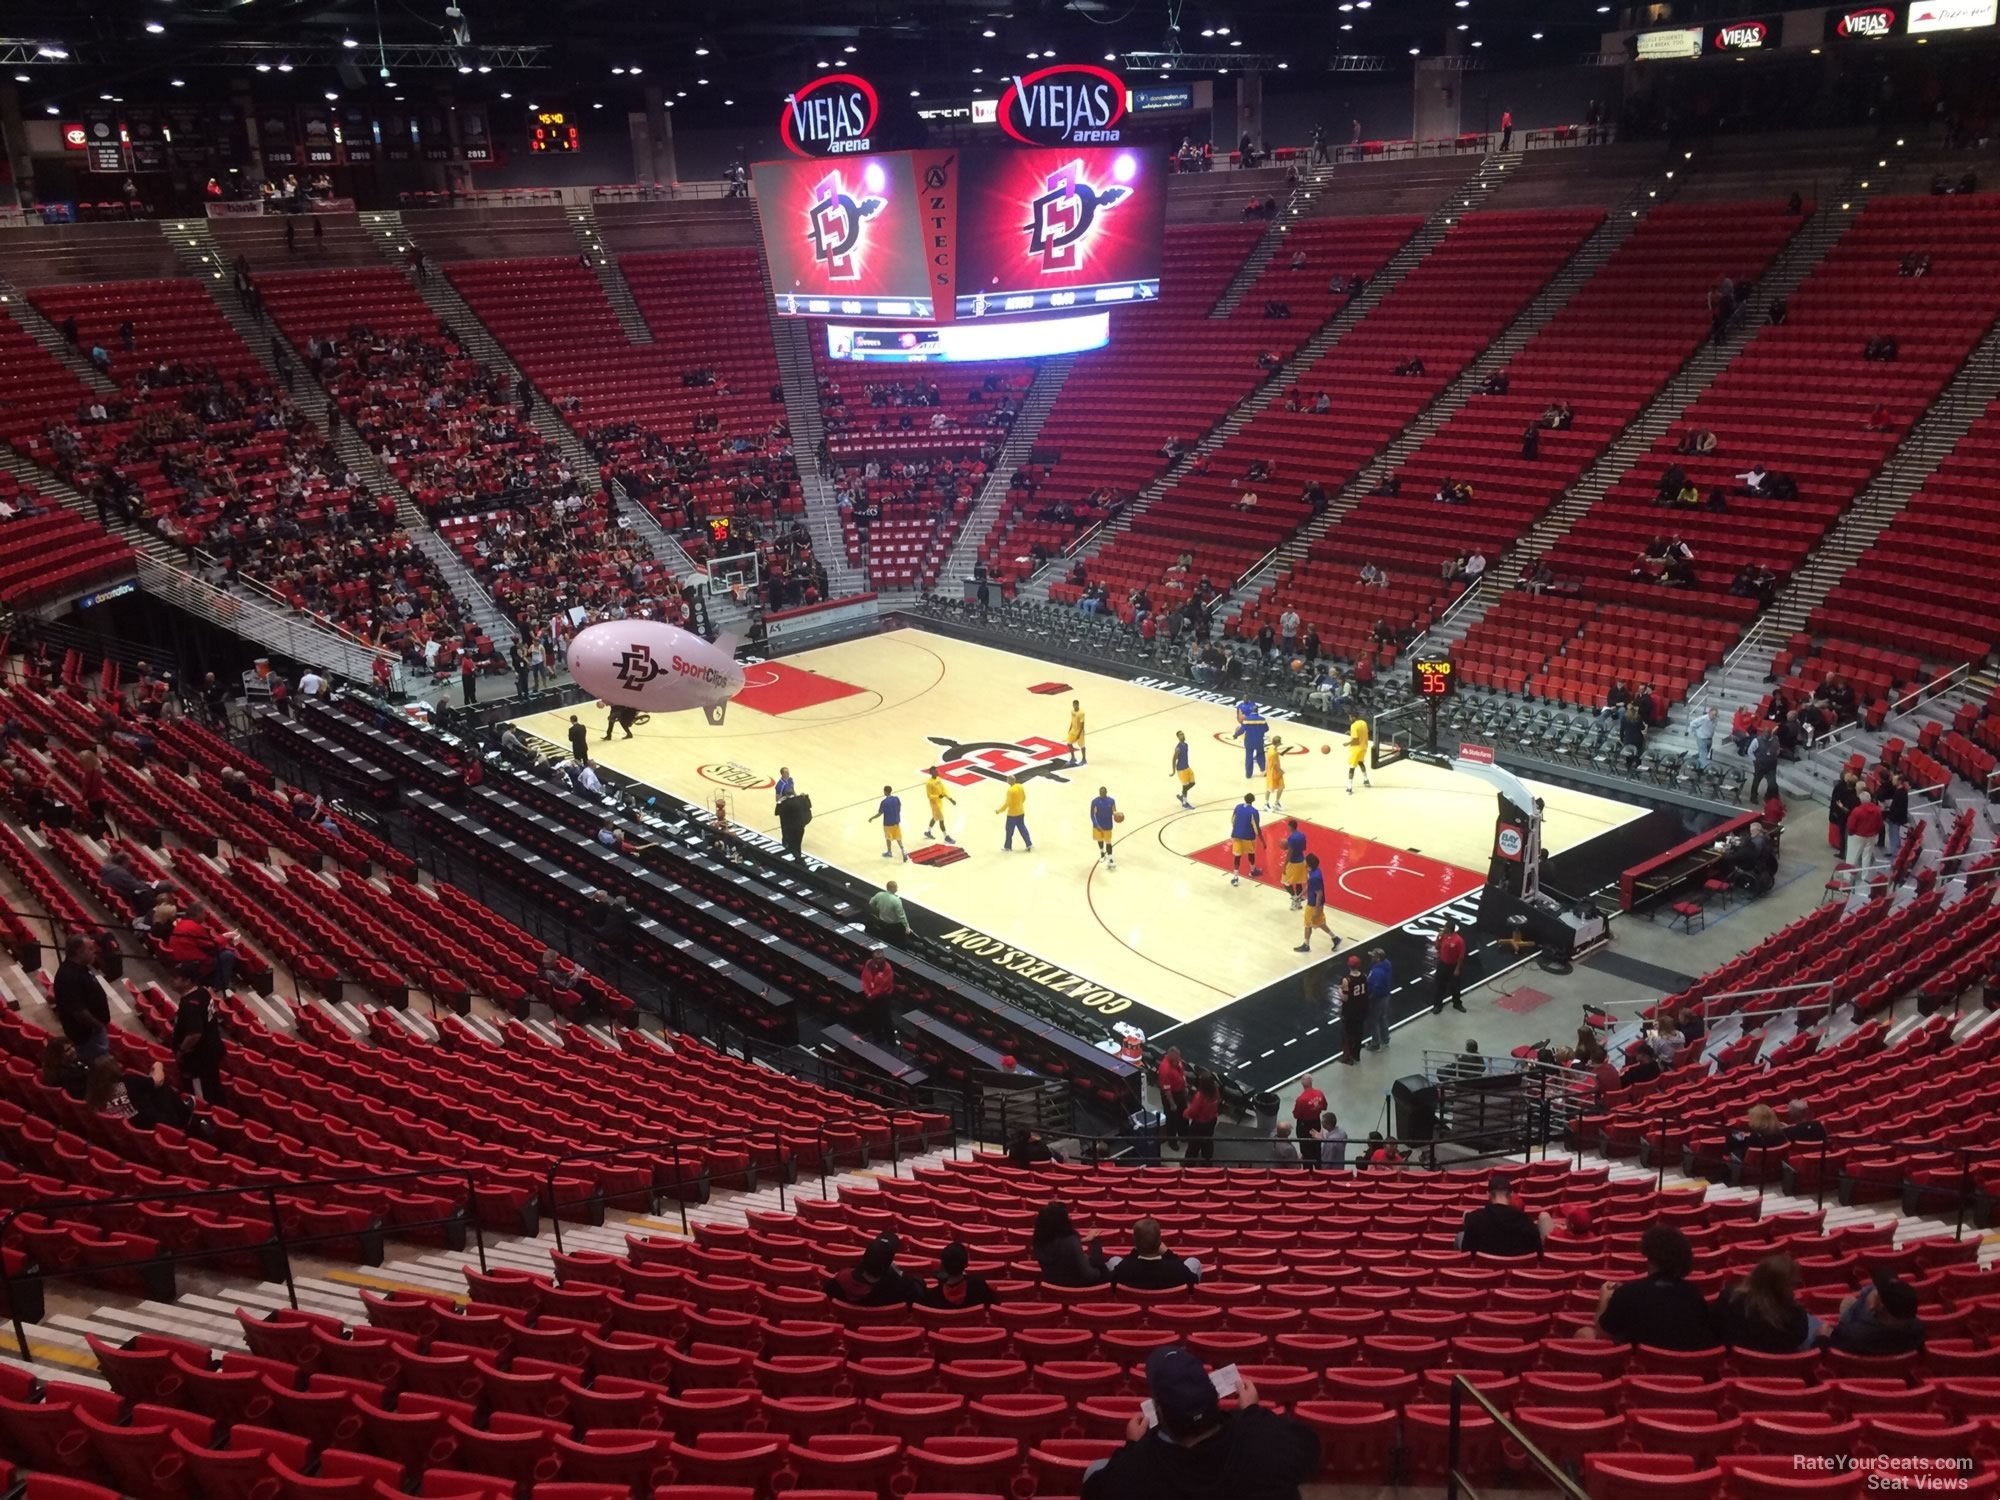 San diego state basketball viejas arena seating chart